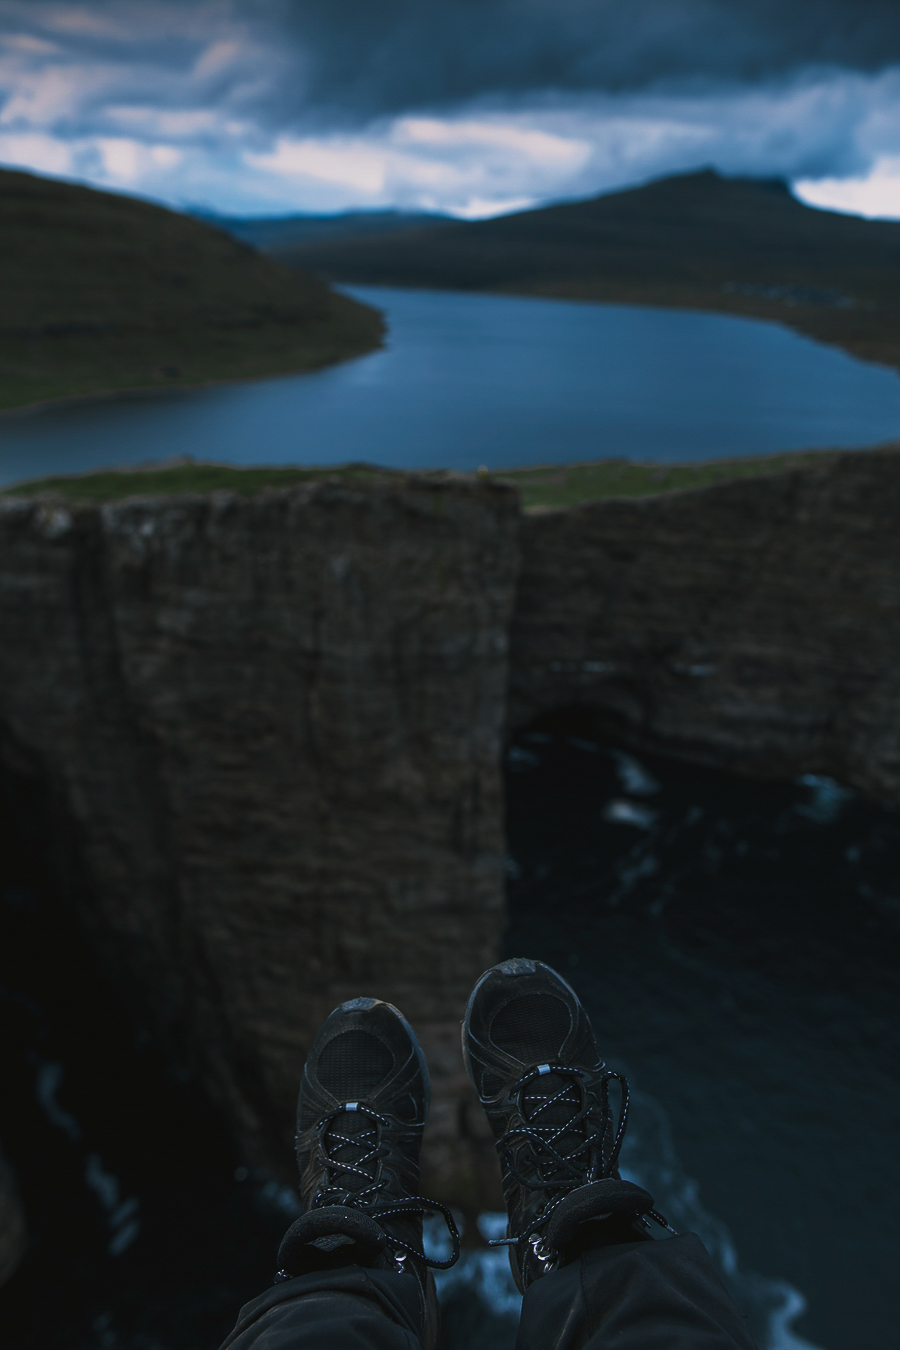 Shoes on the edge of a cliff